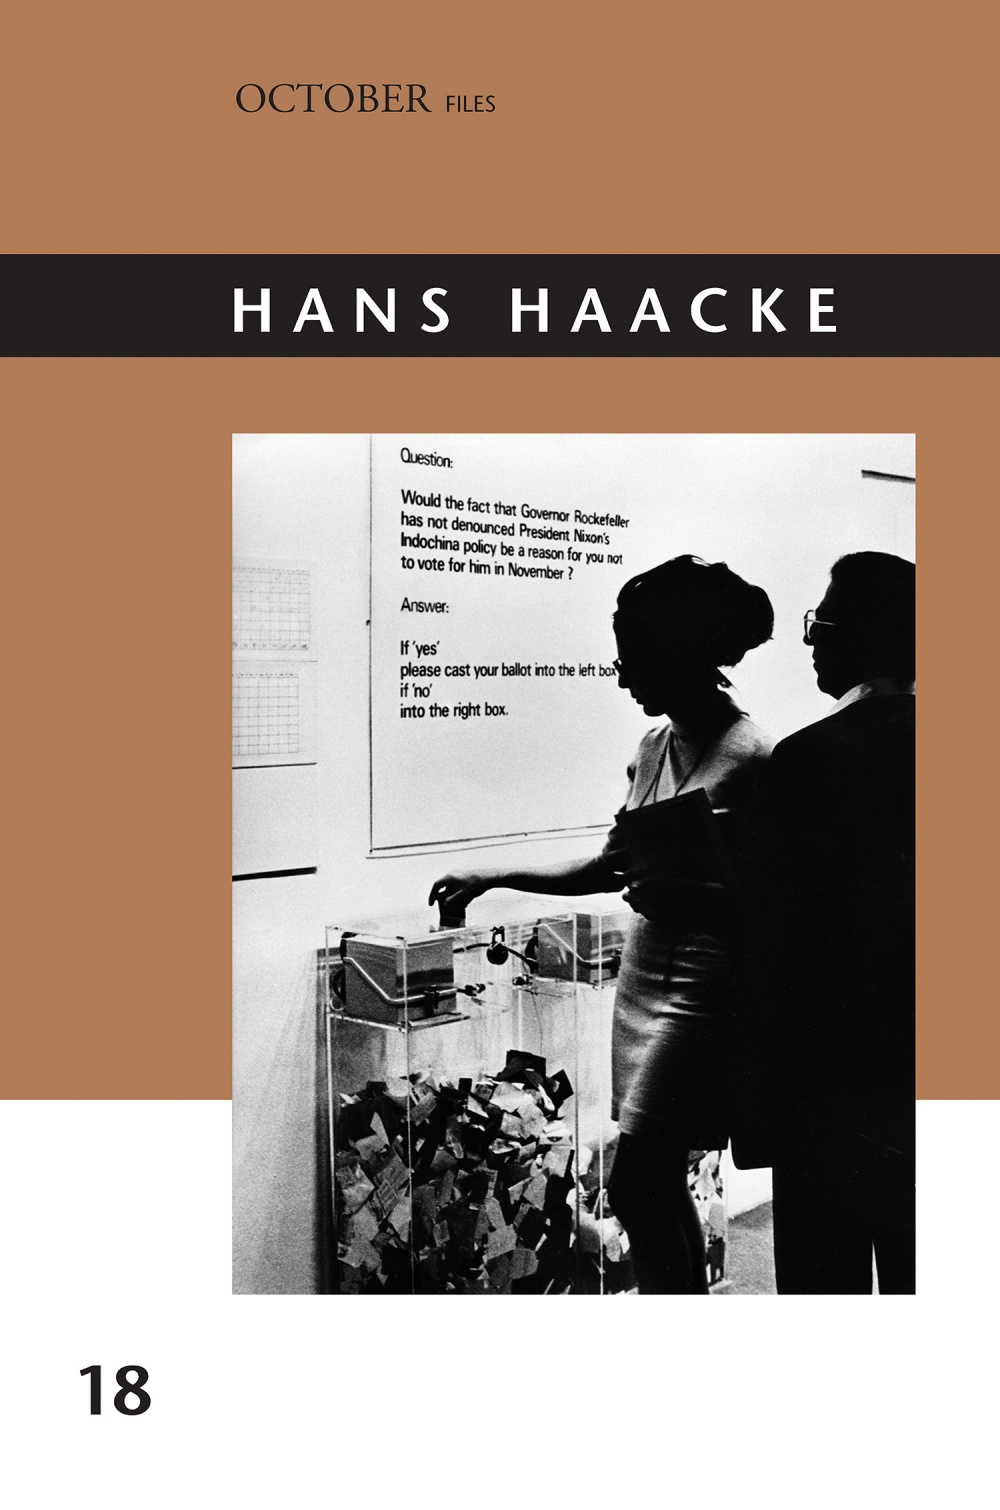 october files hans haacke